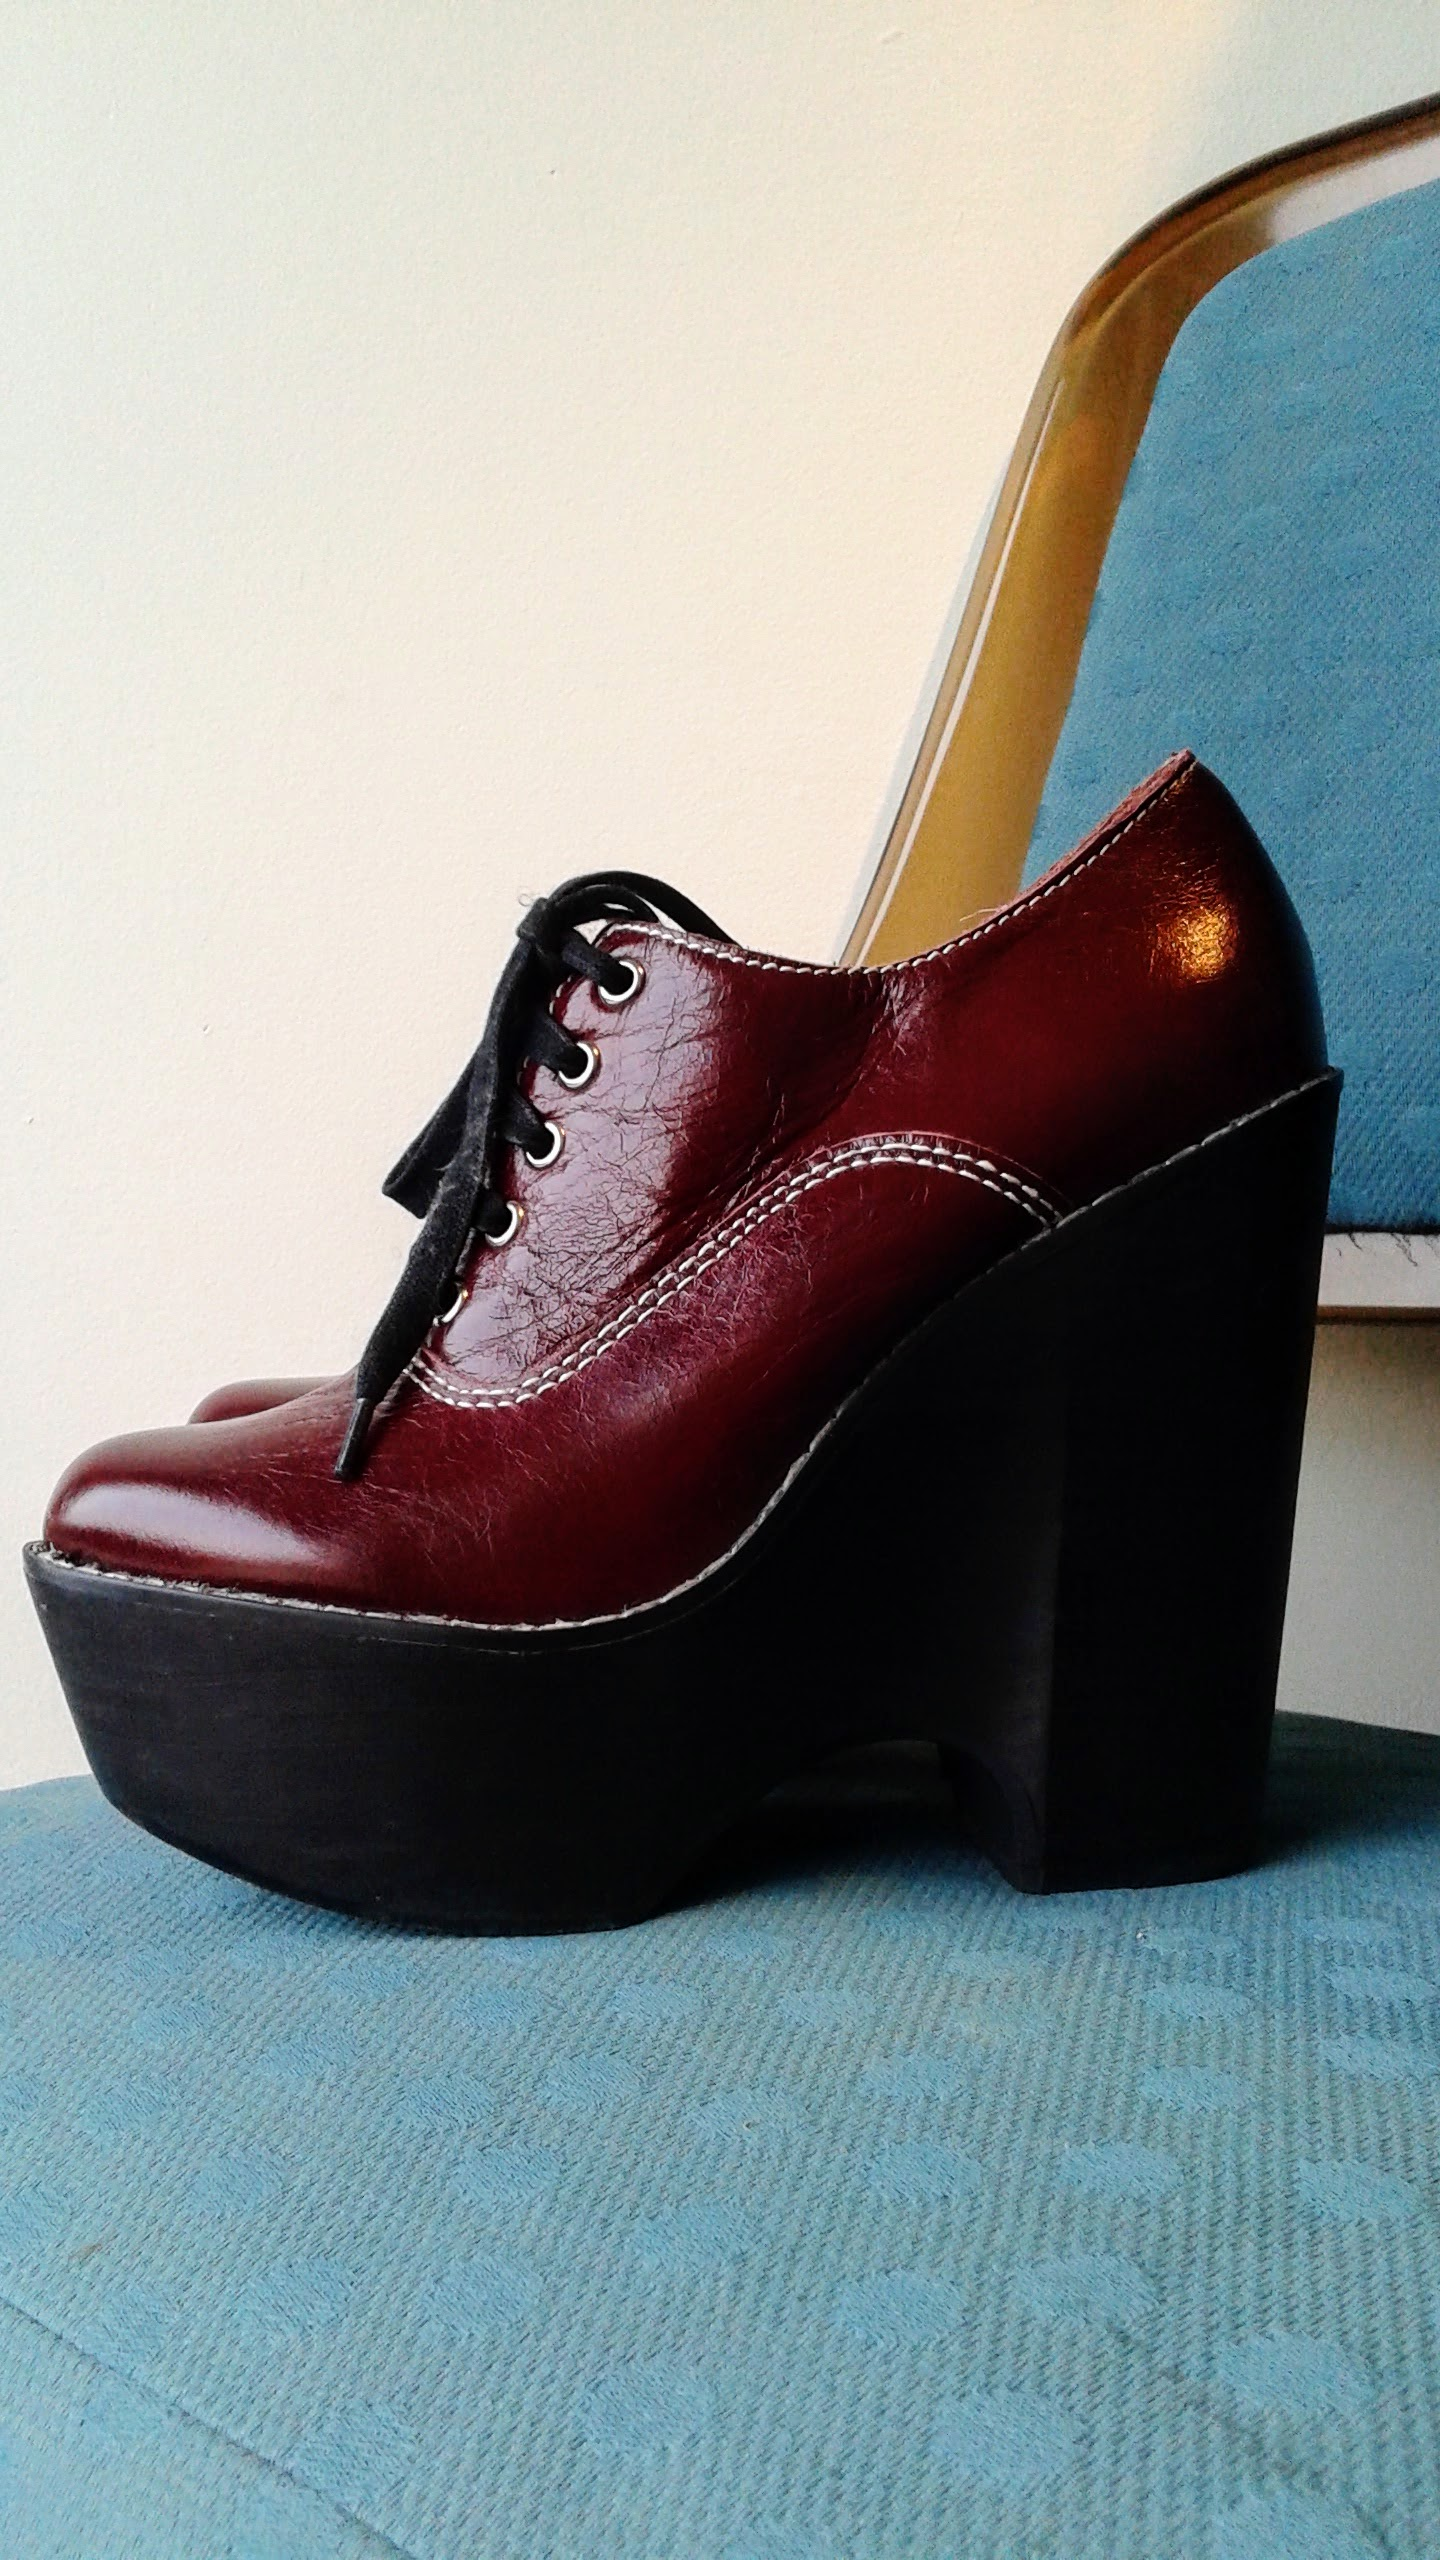 Jeffrey Campbell shoes; S7.5, $75